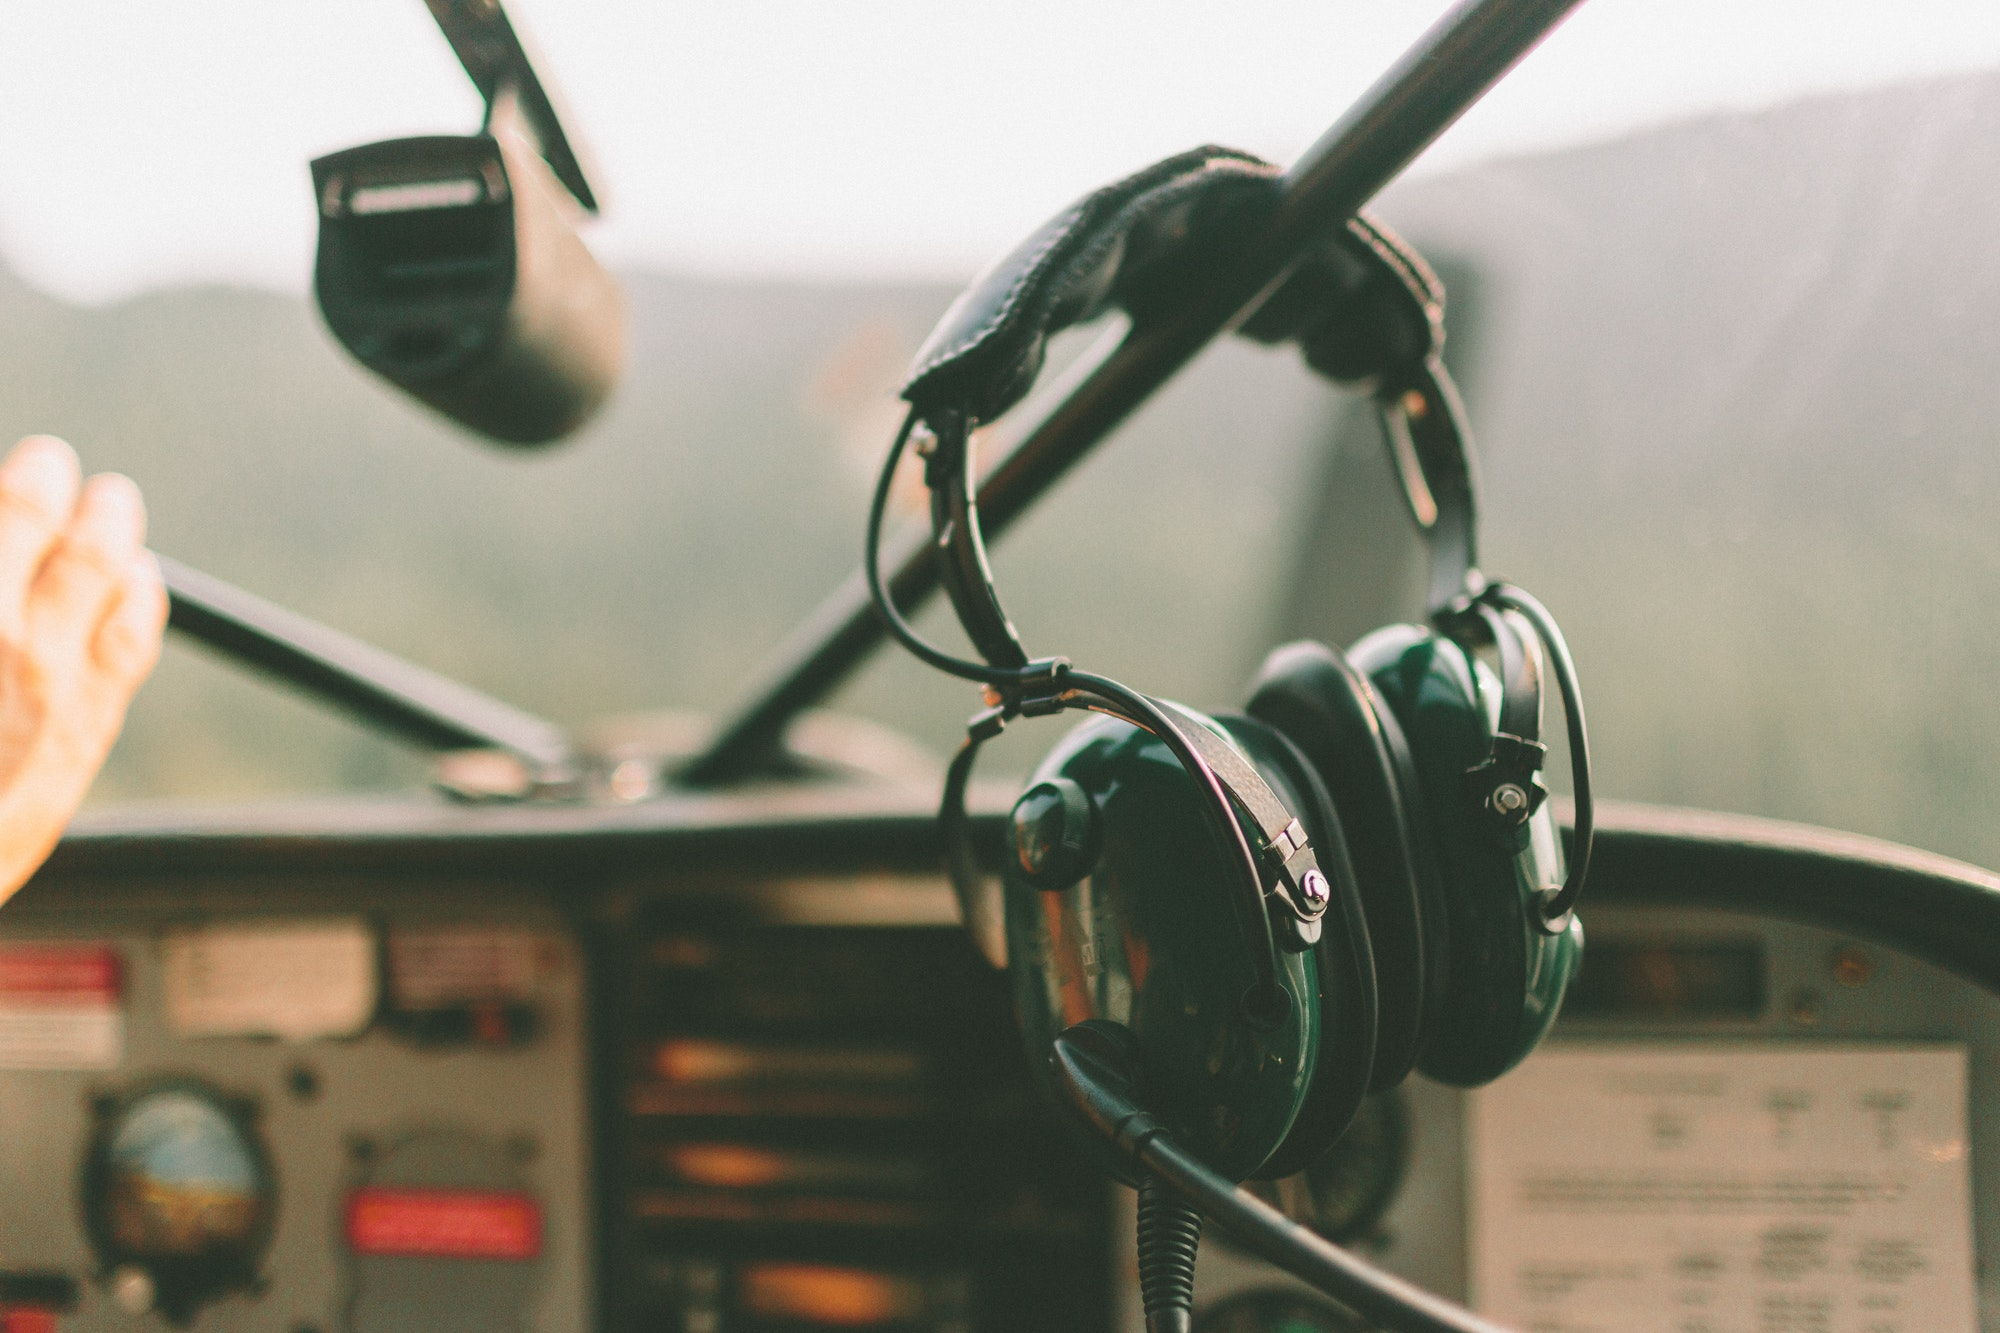 A head set in the cockpit of an airplane.